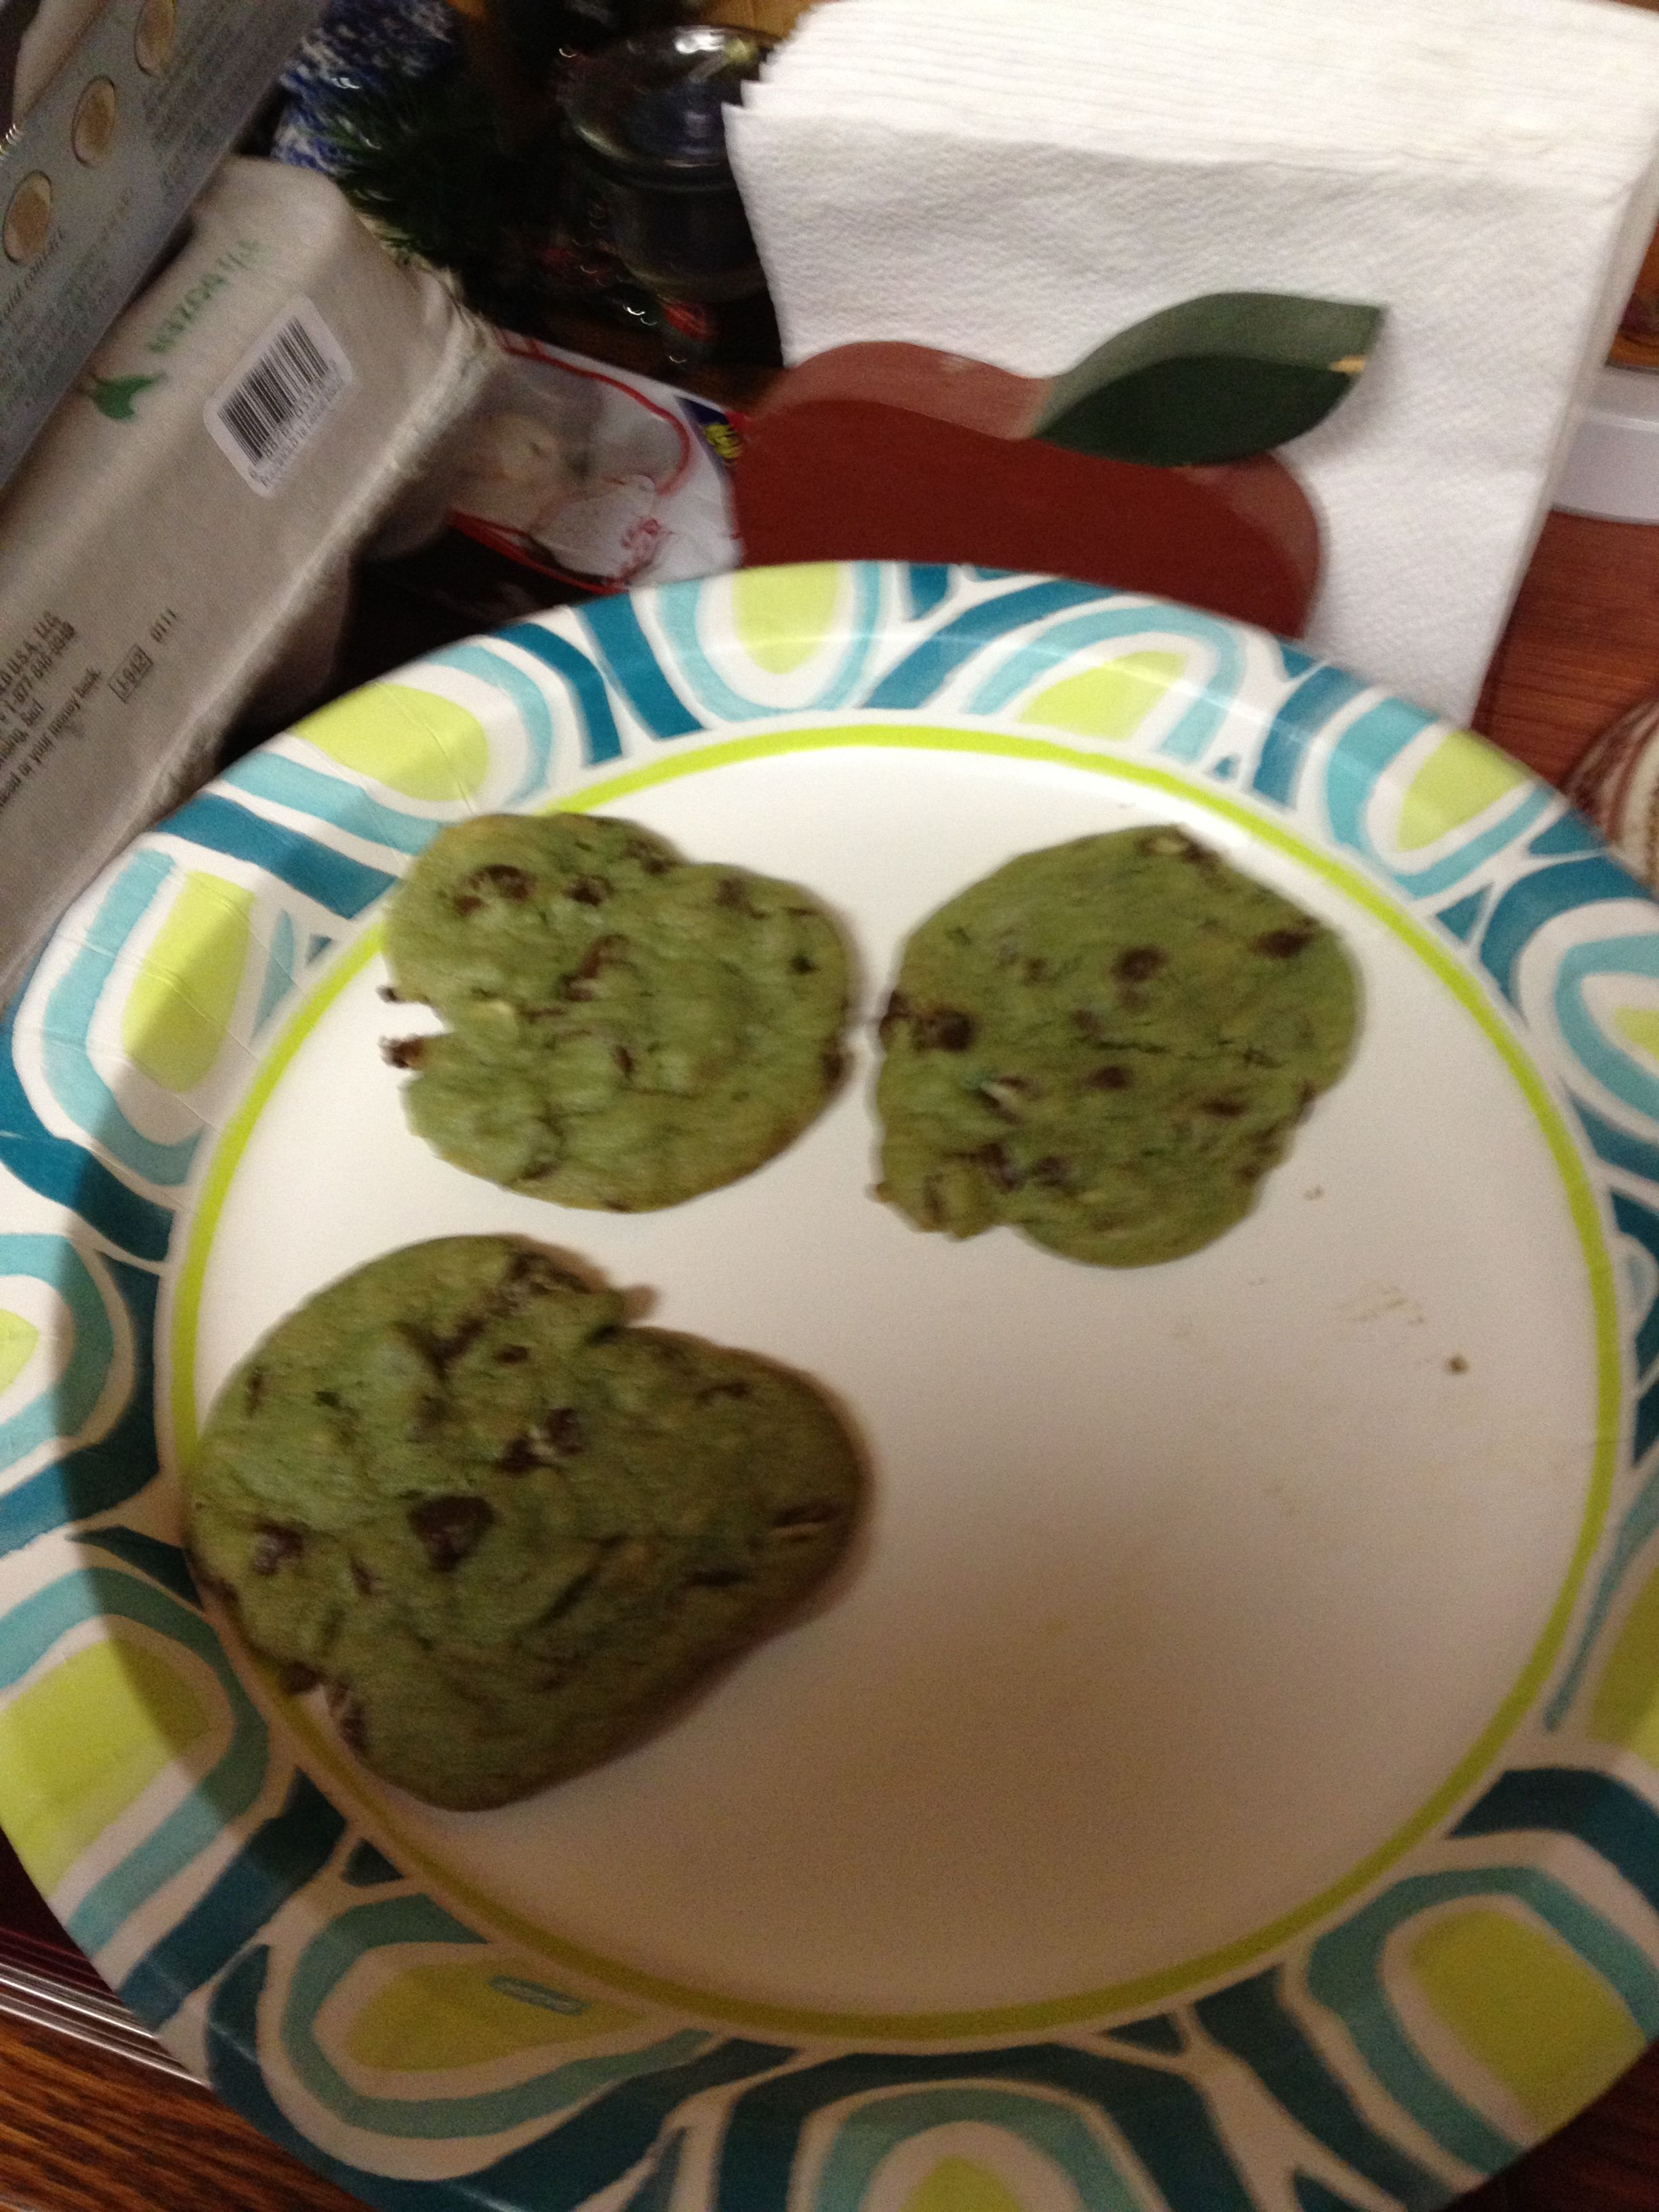 Mint chocolate chip cookies. So yummy!!